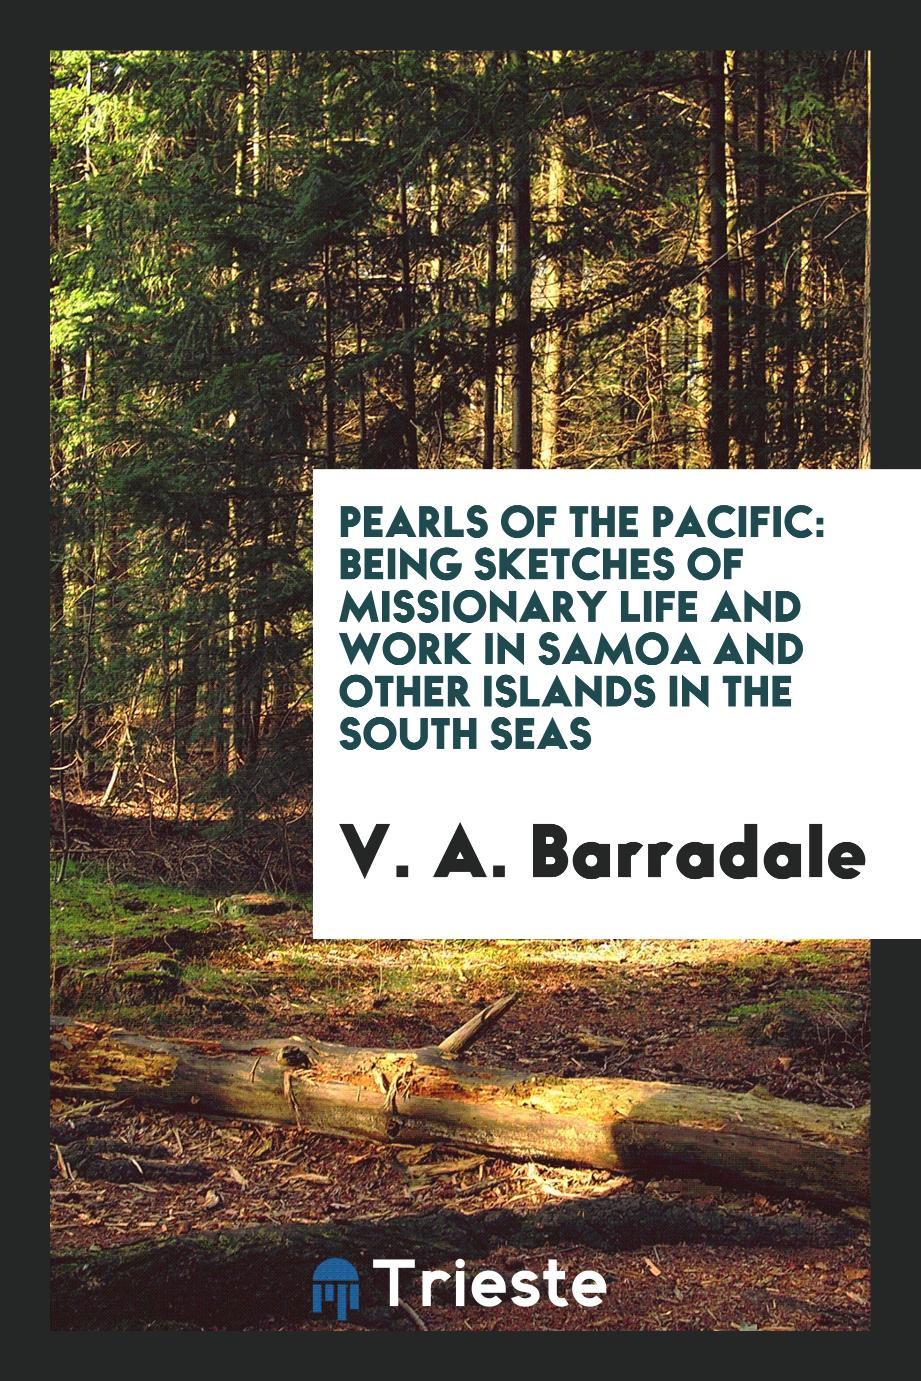 Pearls of the Pacific: Being Sketches of Missionary Life and Work in Samoa and Other Islands in the South Seas